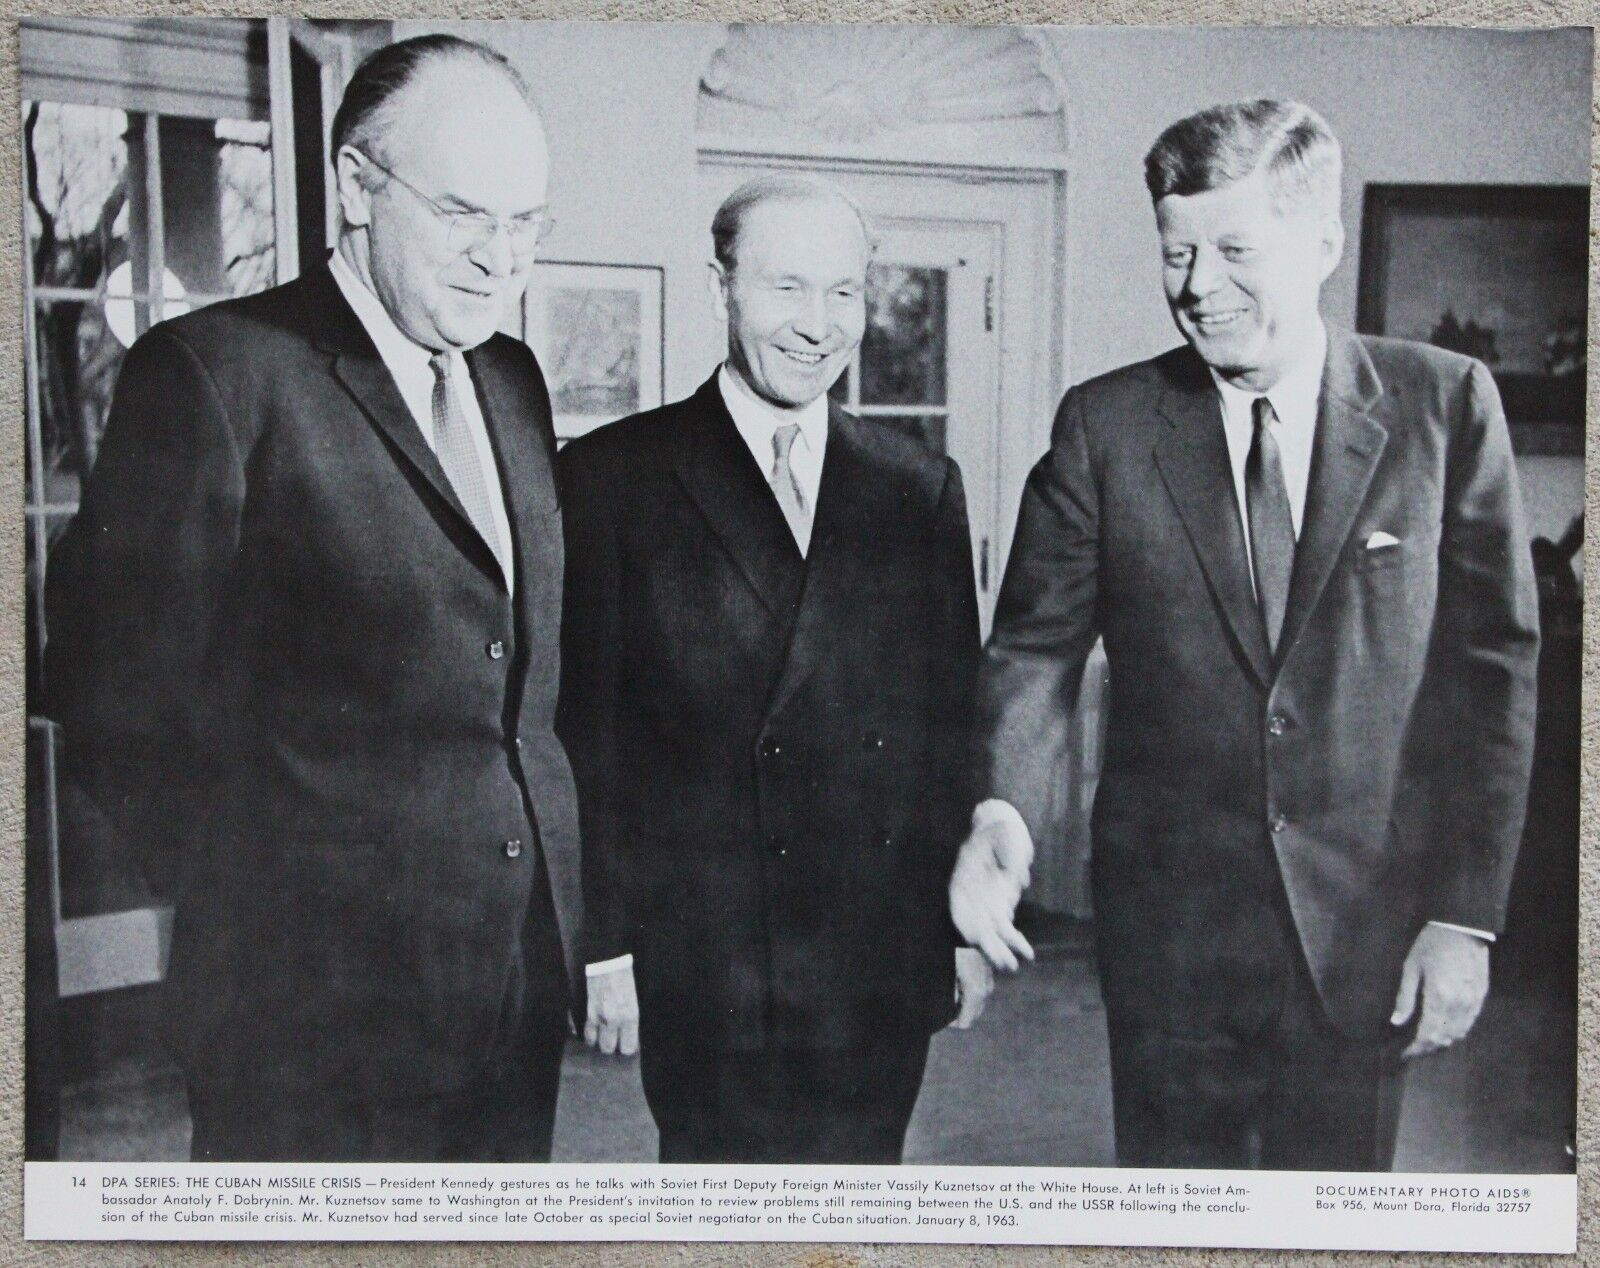 jfk and the cuban missile crisis The cuban missile crisis  us president john f kennedy thought the chance of escalation to war was between 1 in 3 and even, and what we have learned in later.